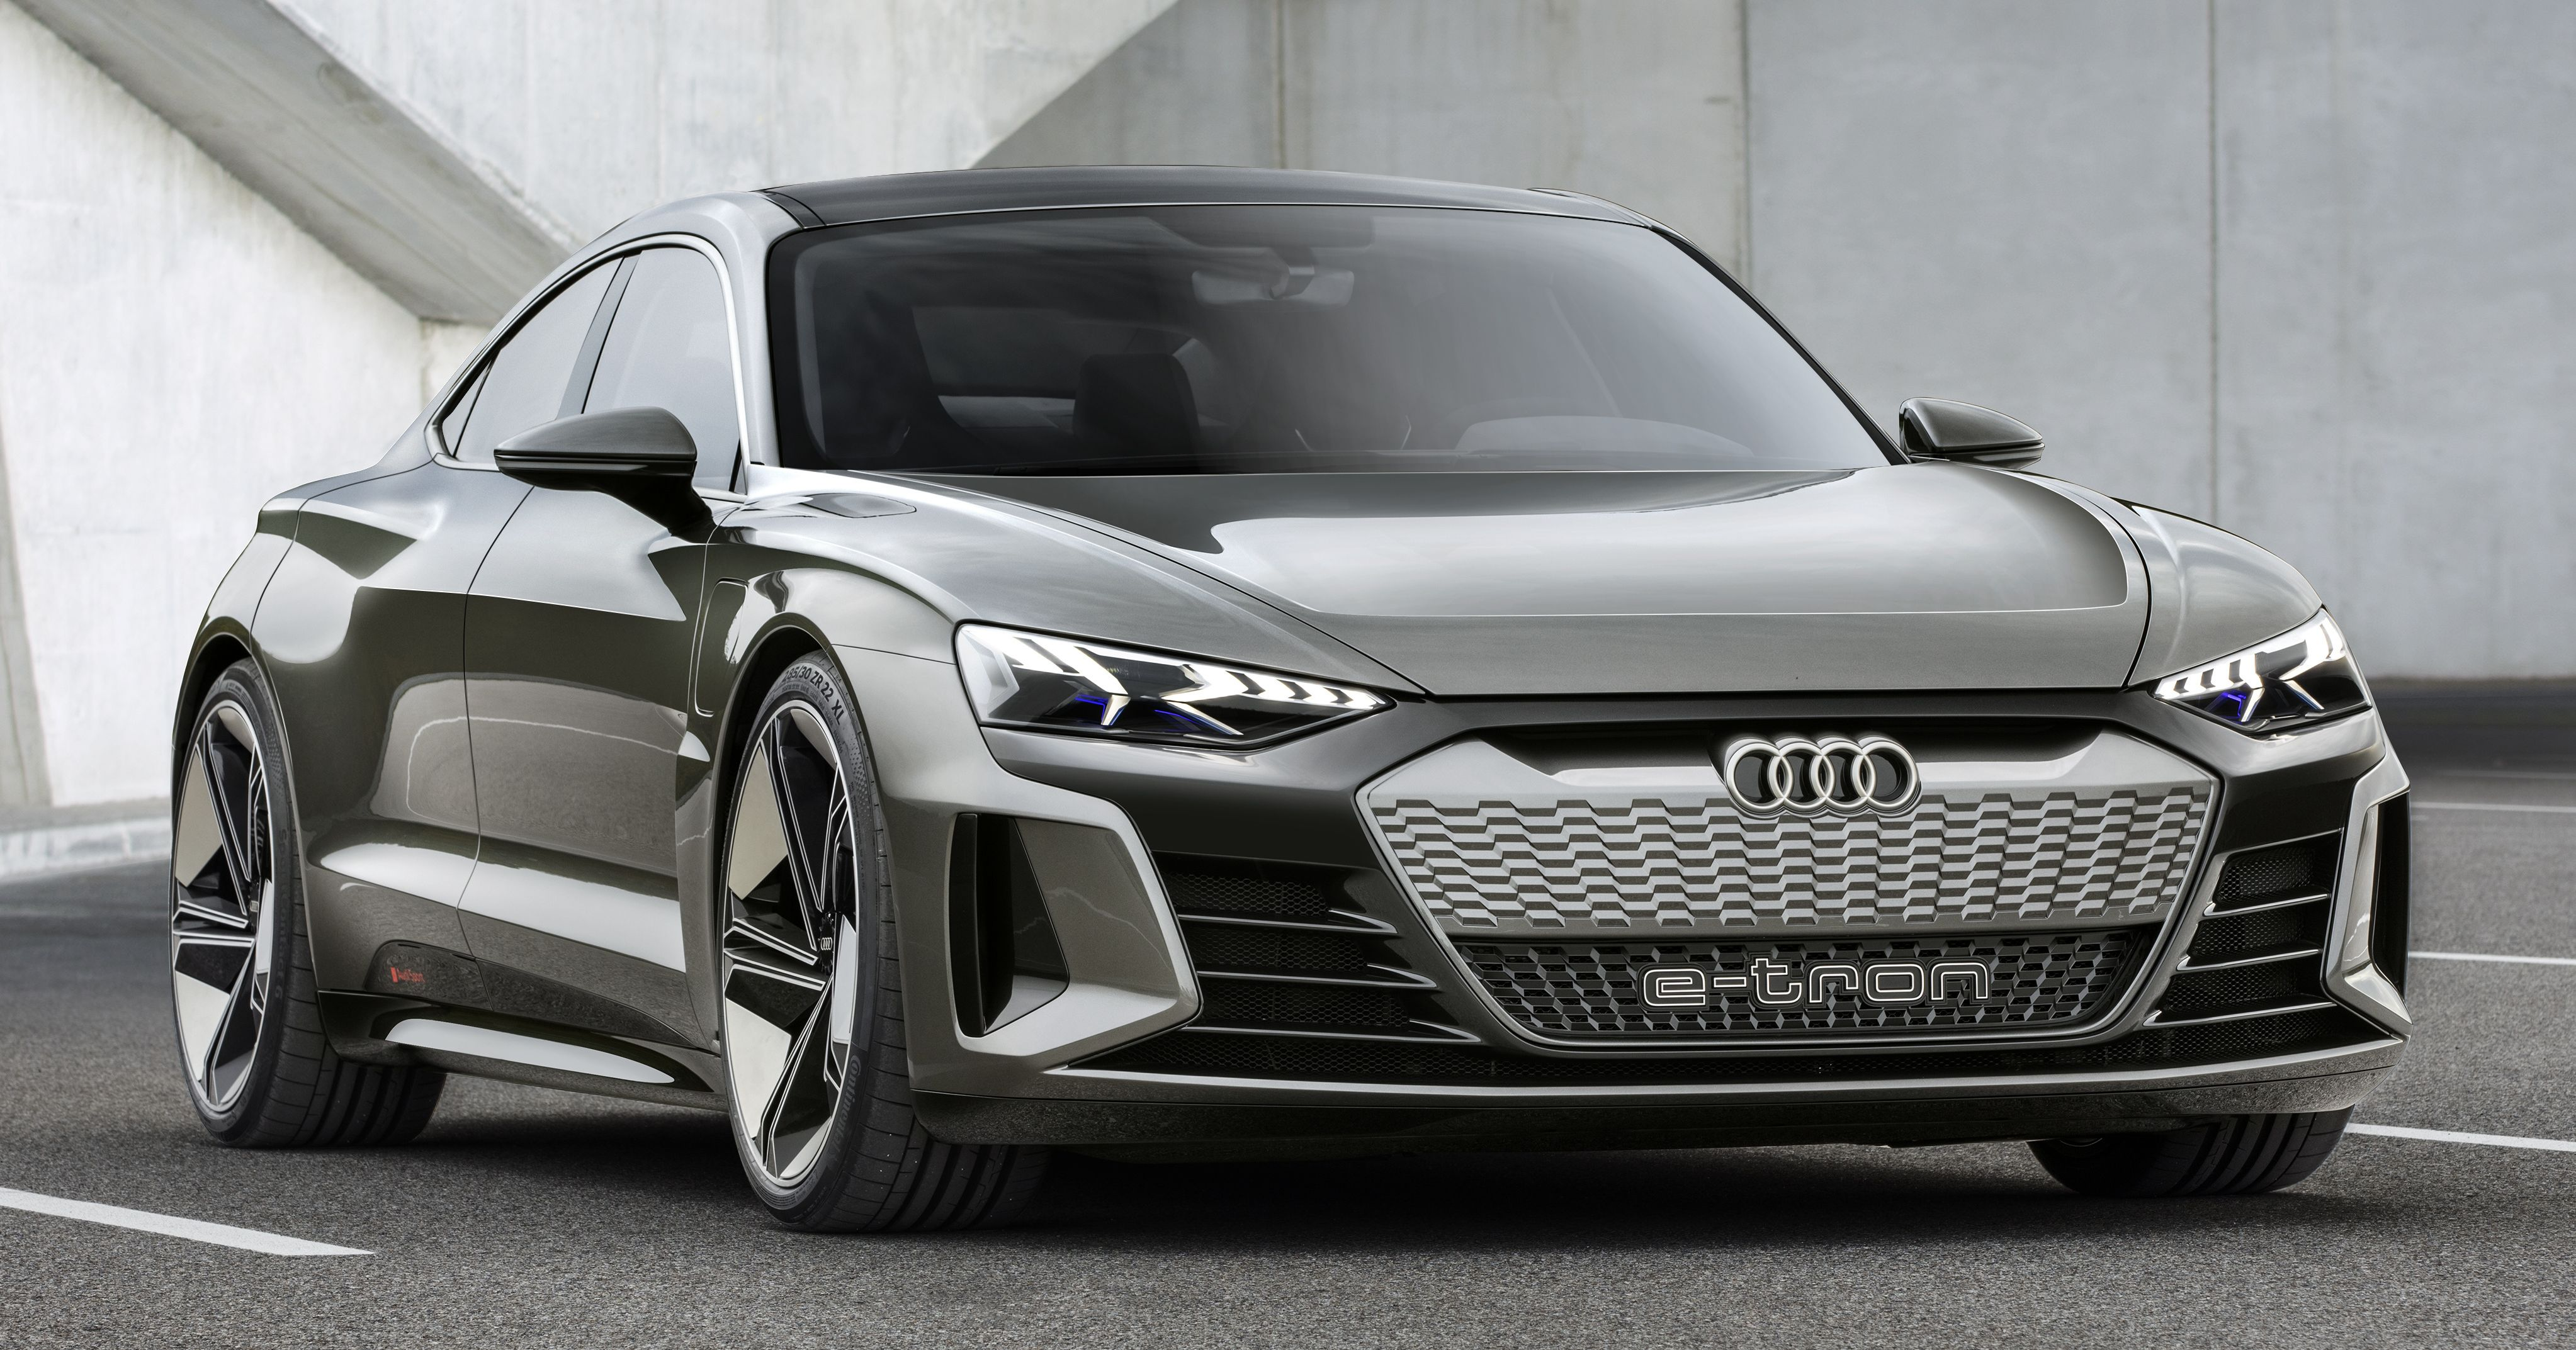 2020 Audi Q1 Release Date, Concept, Price, And Specs >> 2020 Audi Q1 Release Date Concept Price And Specs Best Upcoming